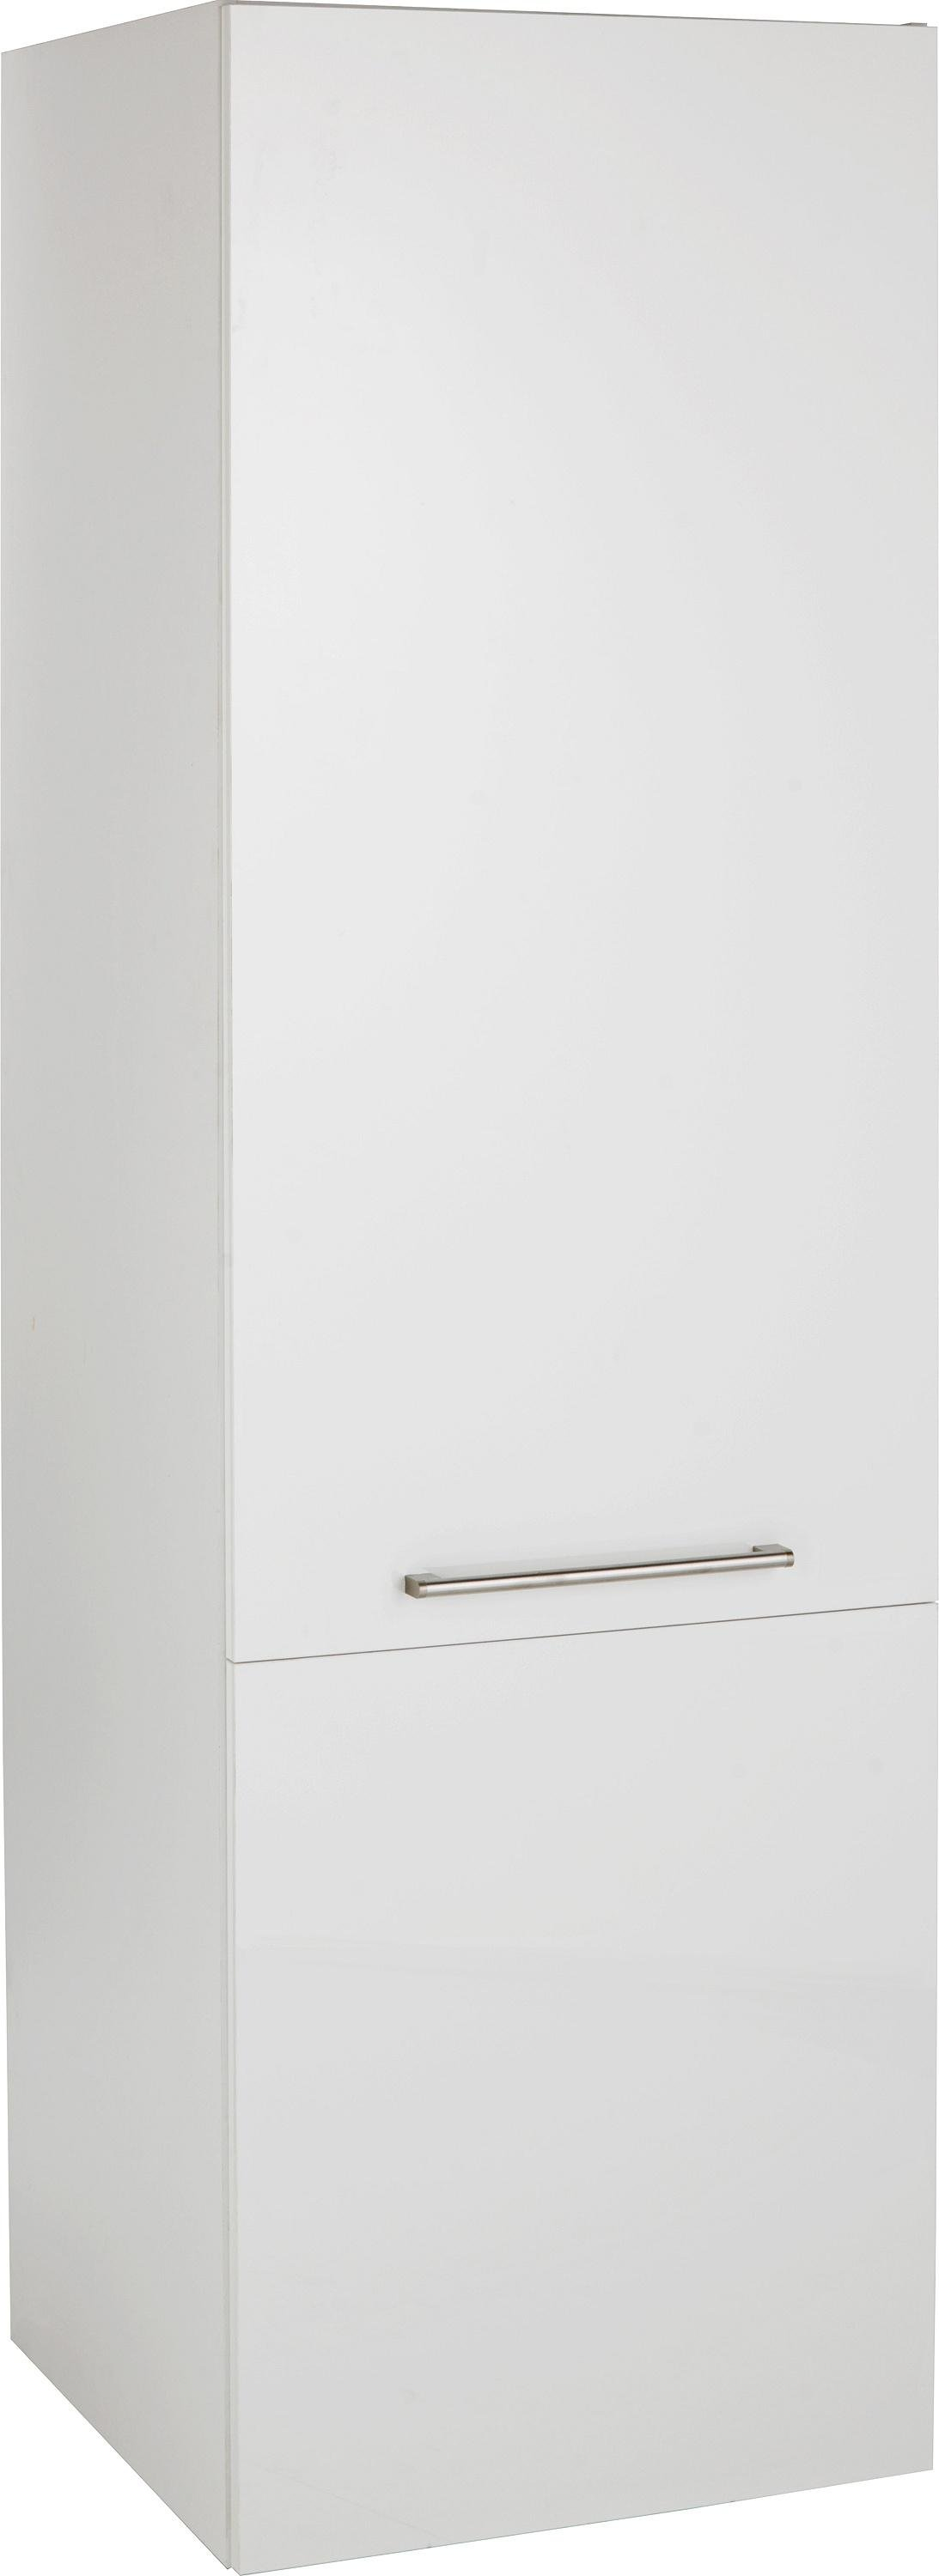 Hygena valencia 600mm tall kitchen larder unit white gloss for White gloss tall kitchen units